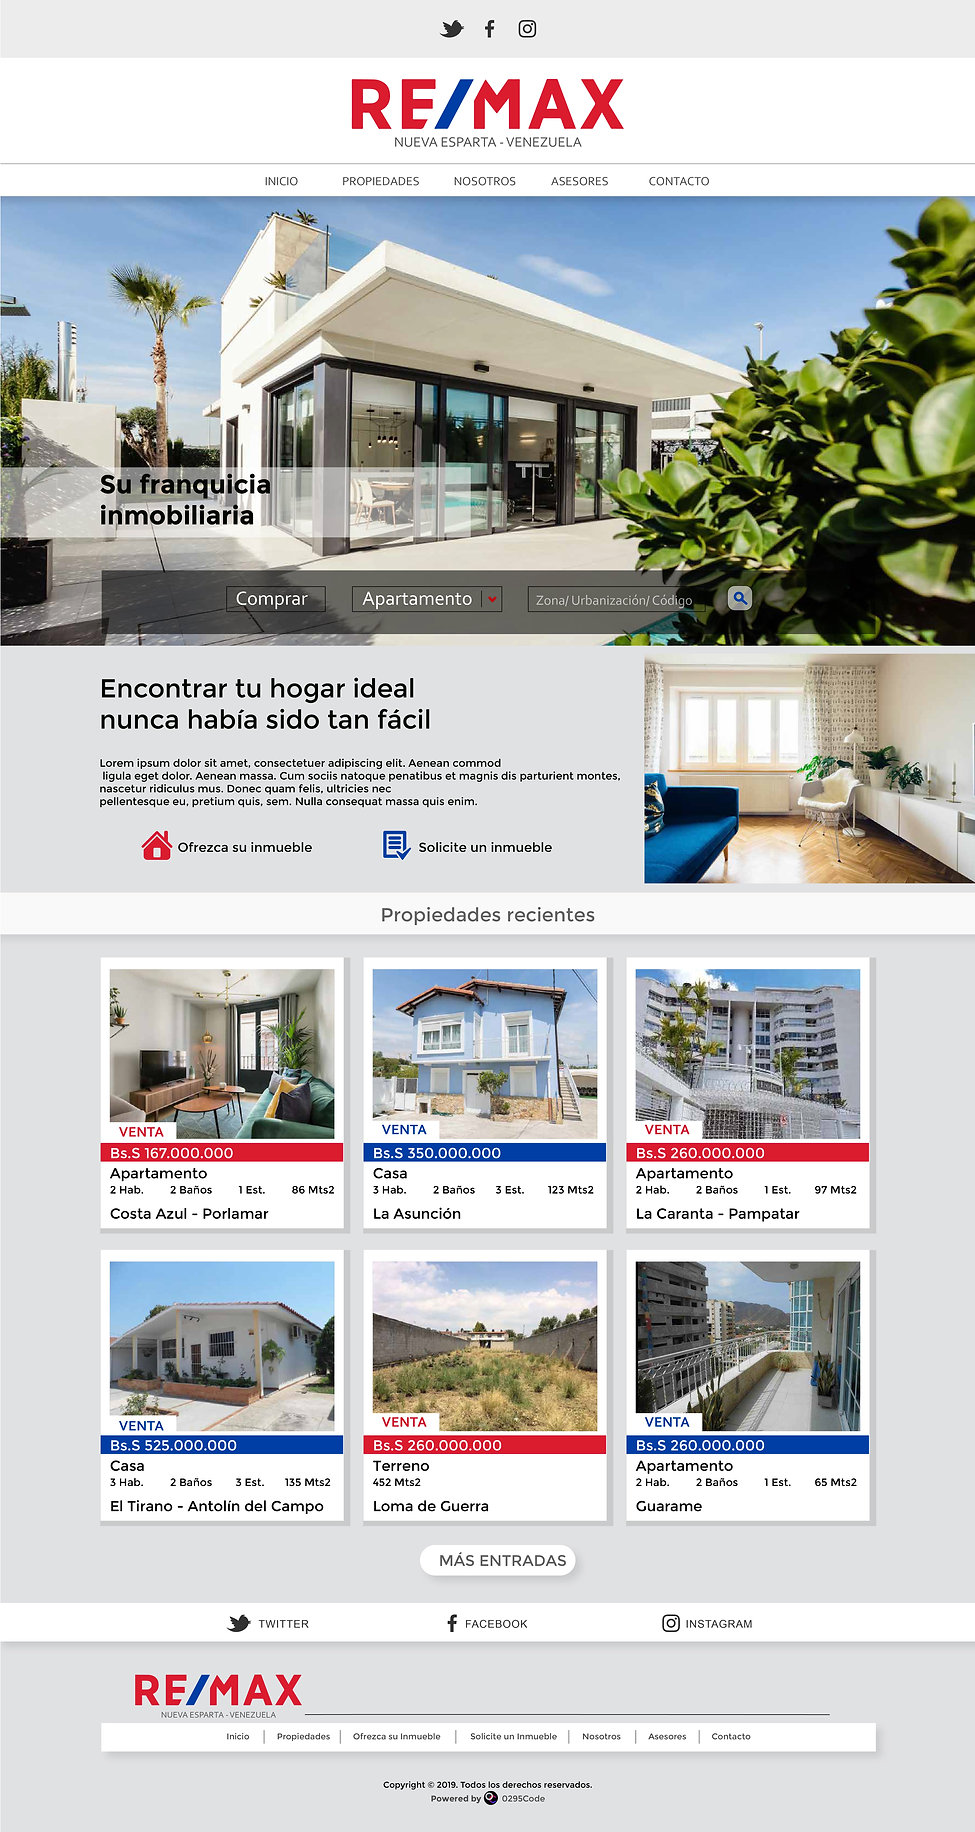 Remax Website-19.jpg